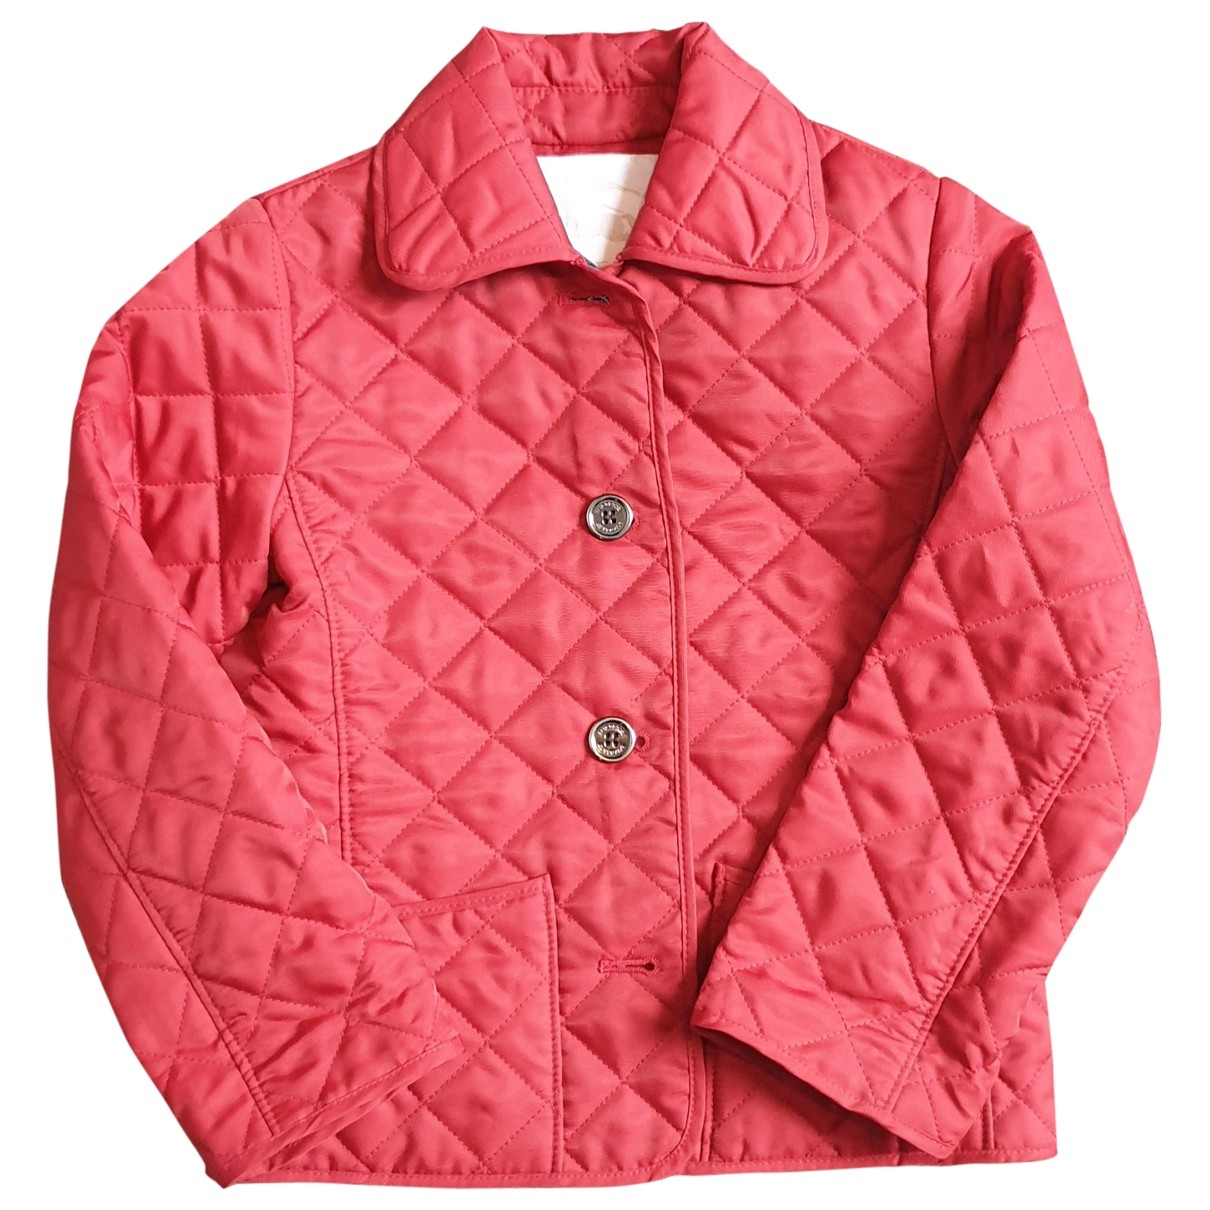 Burberry \N Red jacket & coat for Kids 5 years - up to 108cm FR